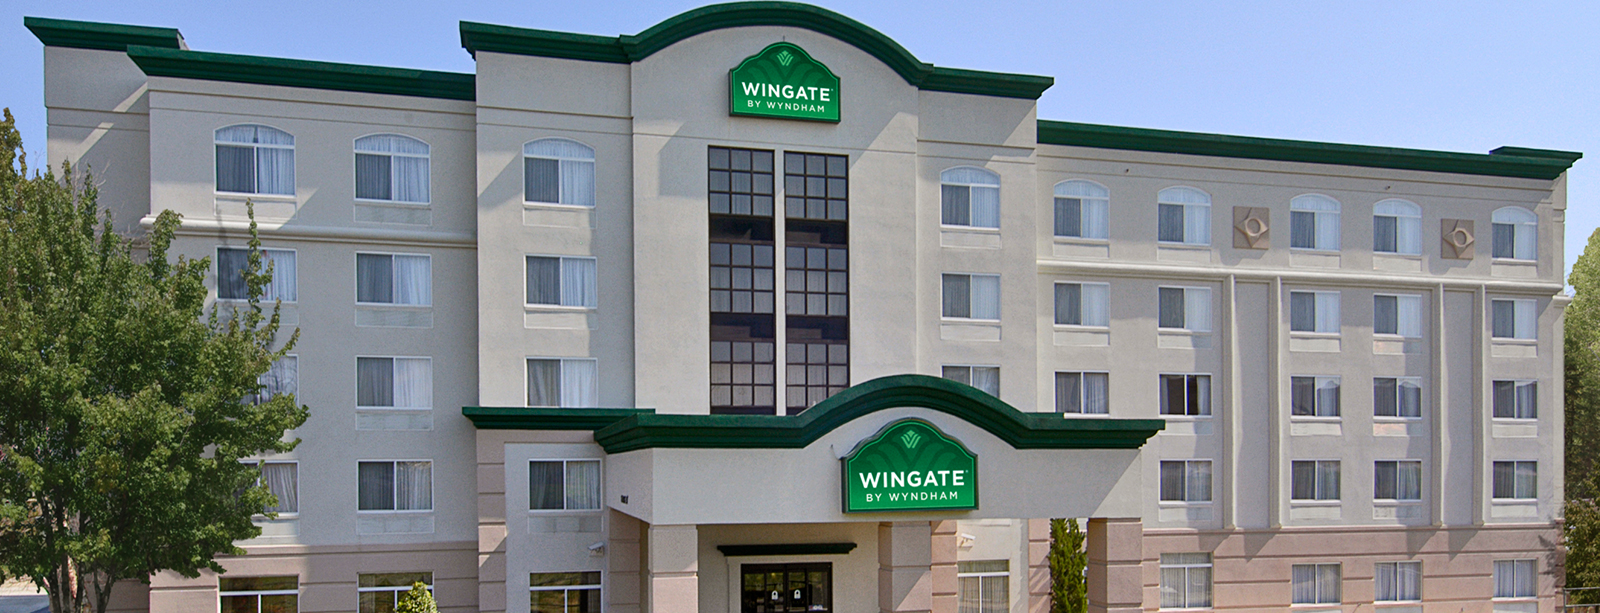 Wingate by Wyndham Chattanooga,Tennessee